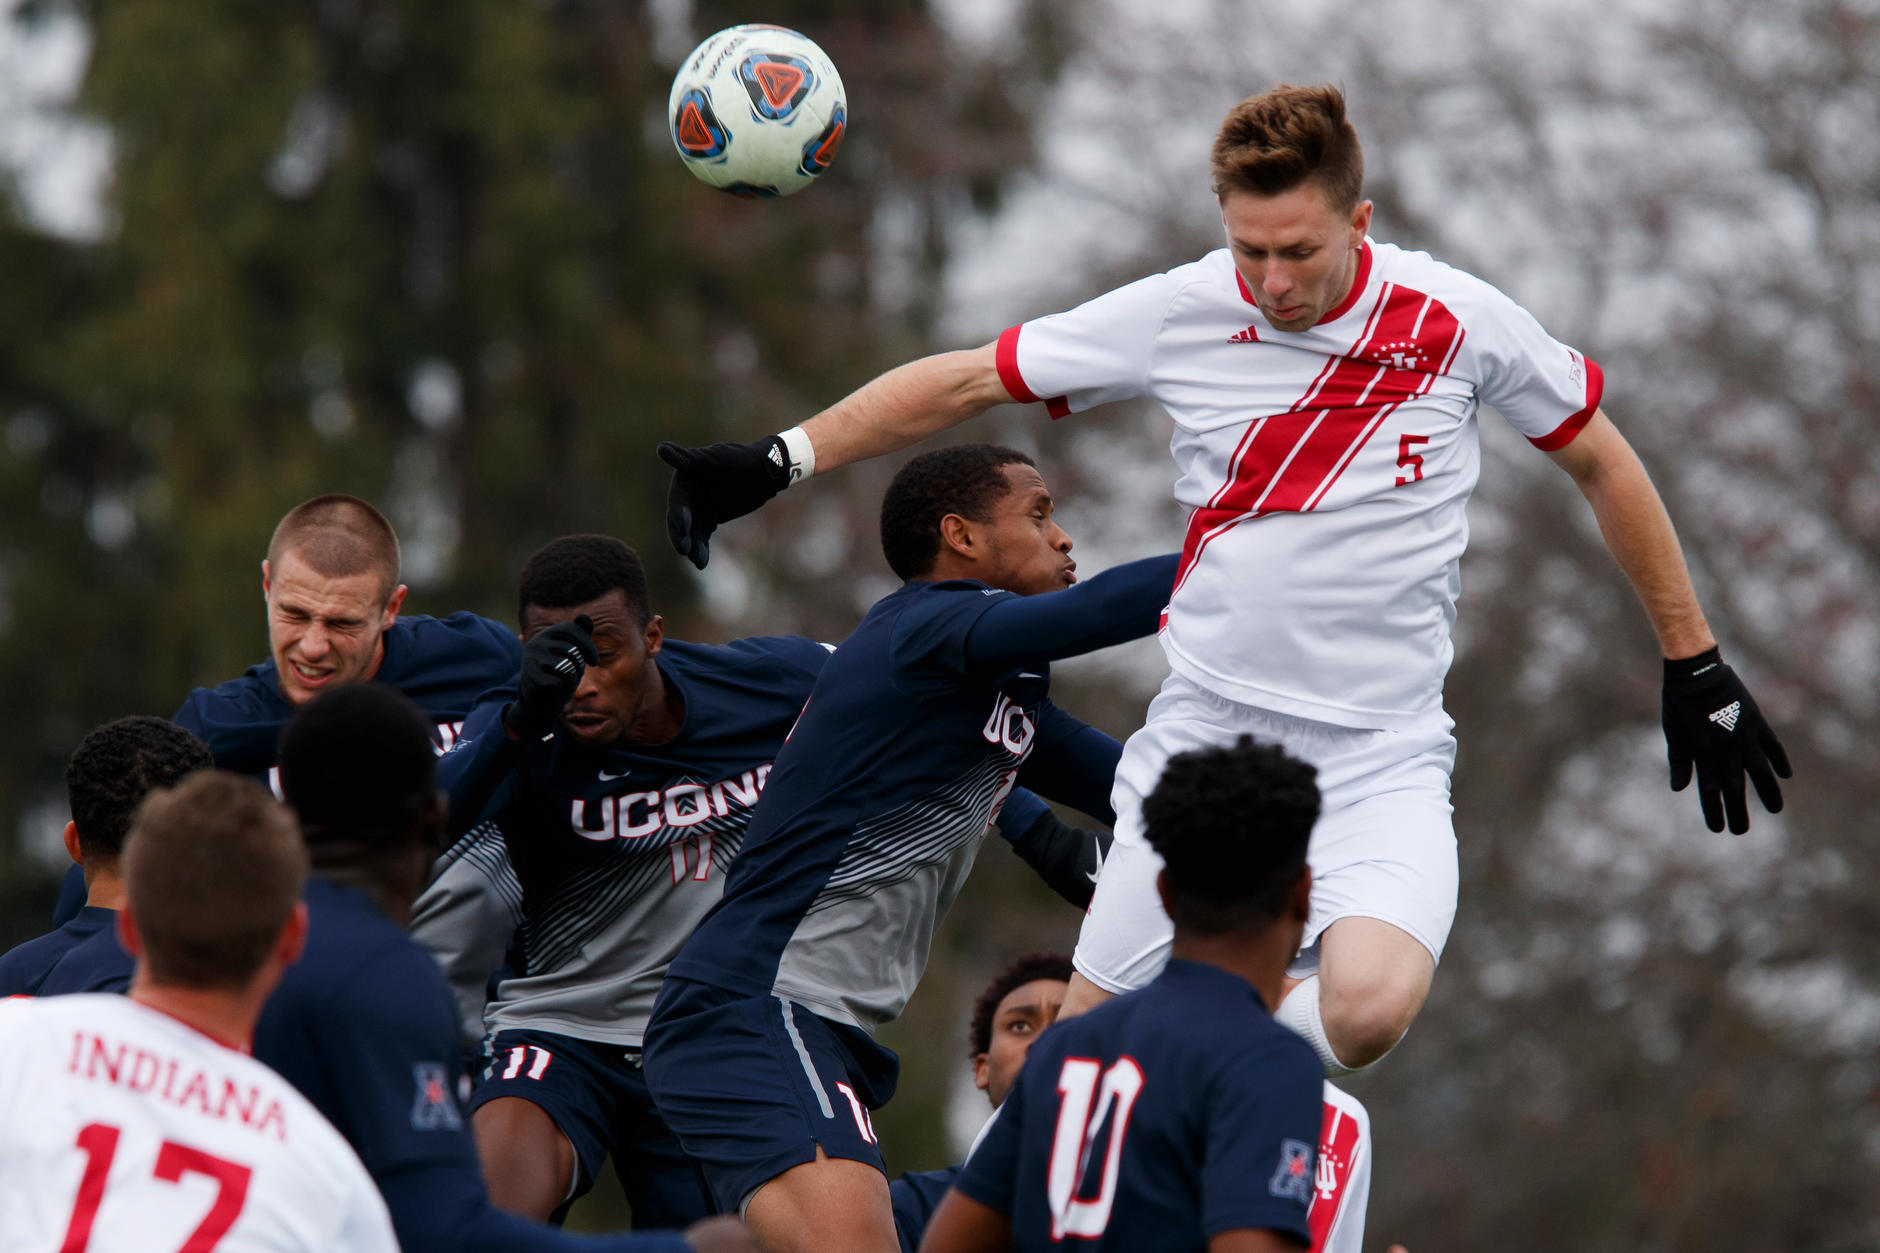 Indiana's Timmy Mehl (5) attempts to connect off a corner kick during the first half of an NCAA men's soccer tournament match at Bill Armstrong Stadium in Bloomington, Ind. on Sunday, Nov. 18, 2018. (James Brosher for The Herald-Times)